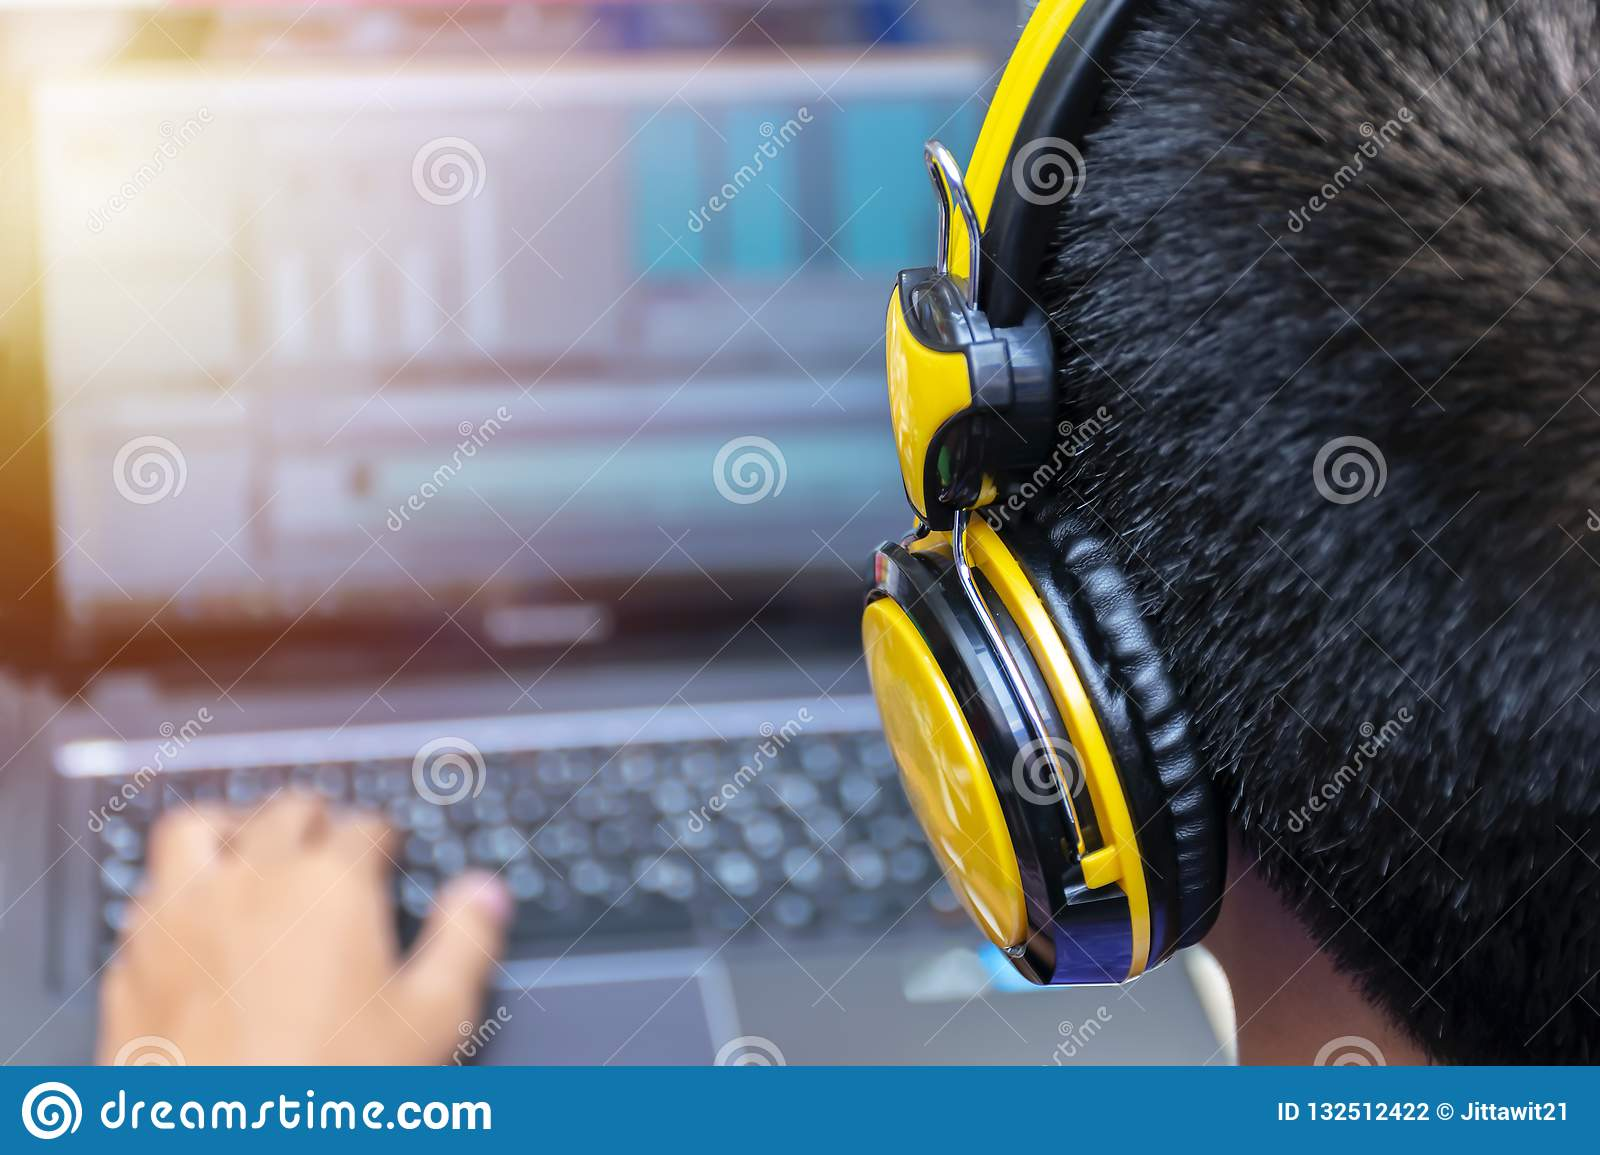 Video Editing Computer Laptops And Headphones With Laptop Stock Photo Image Of Audio Computer 132512422